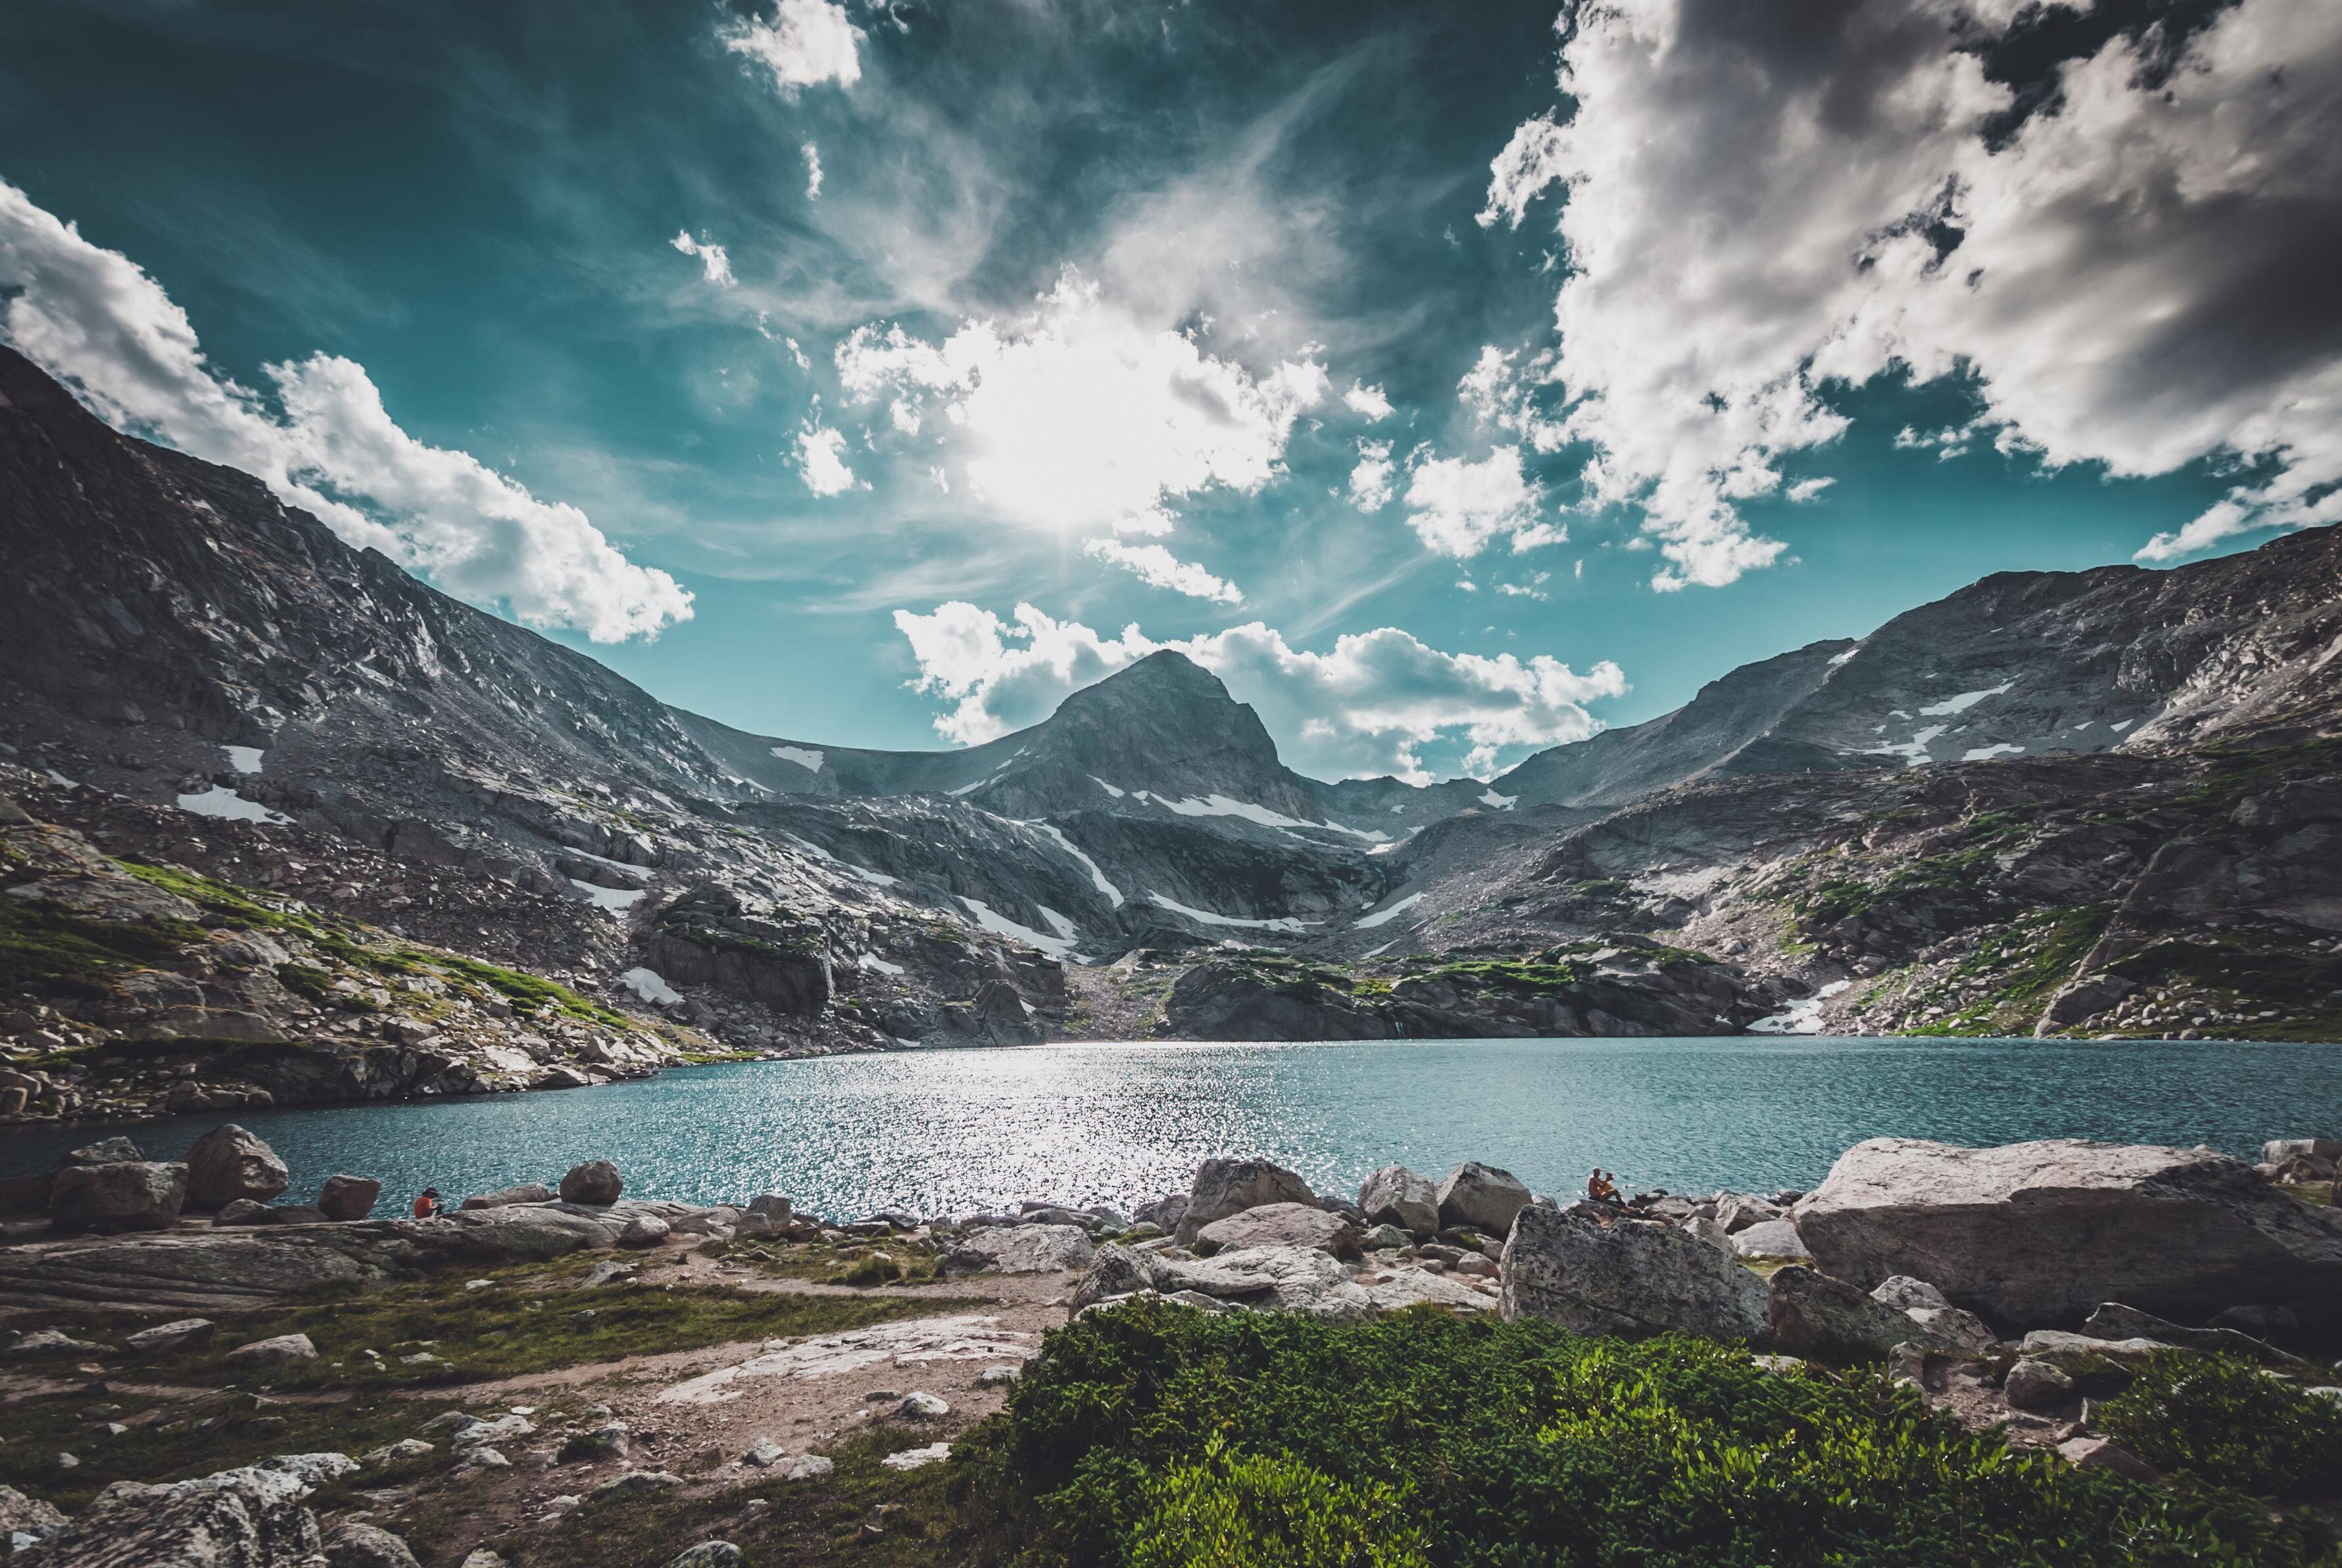 phonewallpaper nature #phonewallpaper #lake #beautiful #hdwallpaper #highdefinition #wallpaper #iphonewallpaper #androidwallpaper #phonewallpaper #picoftheday #pics #pic #picture #pictures #photos #photography #photooftheday #photographers #phonebackground #iphonephotography #iphonephotos #androidwallpaperhd1080p #mesmerizing #scenery #scenic #world #life #landscape #picturesque #breathtaking #spectacular #amazingplaces #amazing #places #nature #natural #view #vista #4kwallpaper